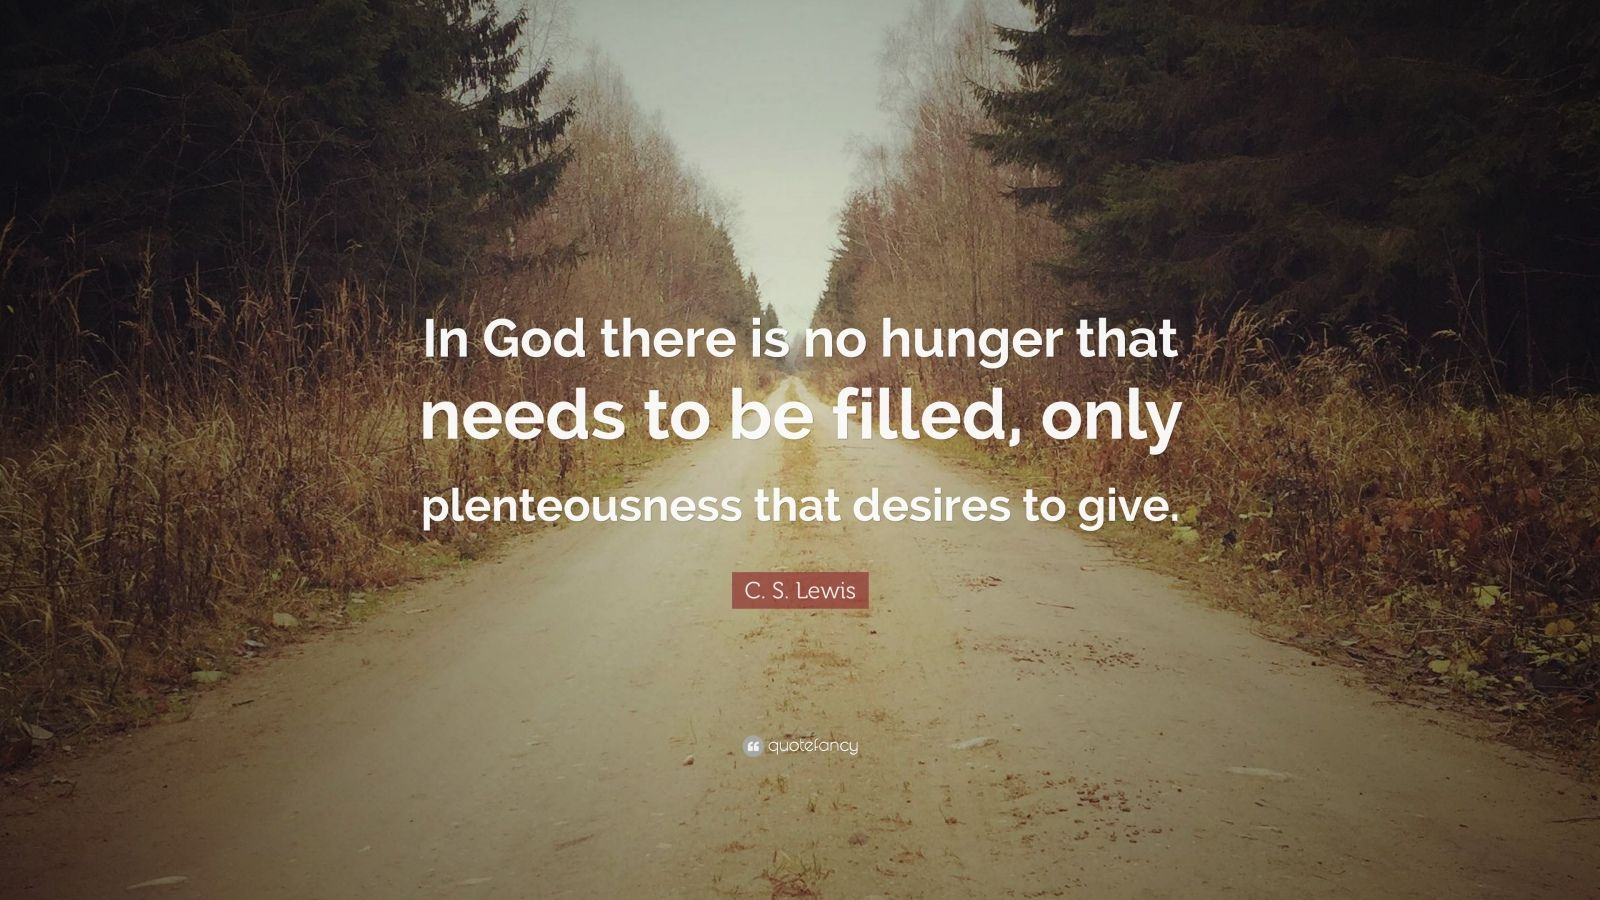 John Lennon Wallpaper Quotes C S Lewis Quote In God There Is No Hunger That Needs